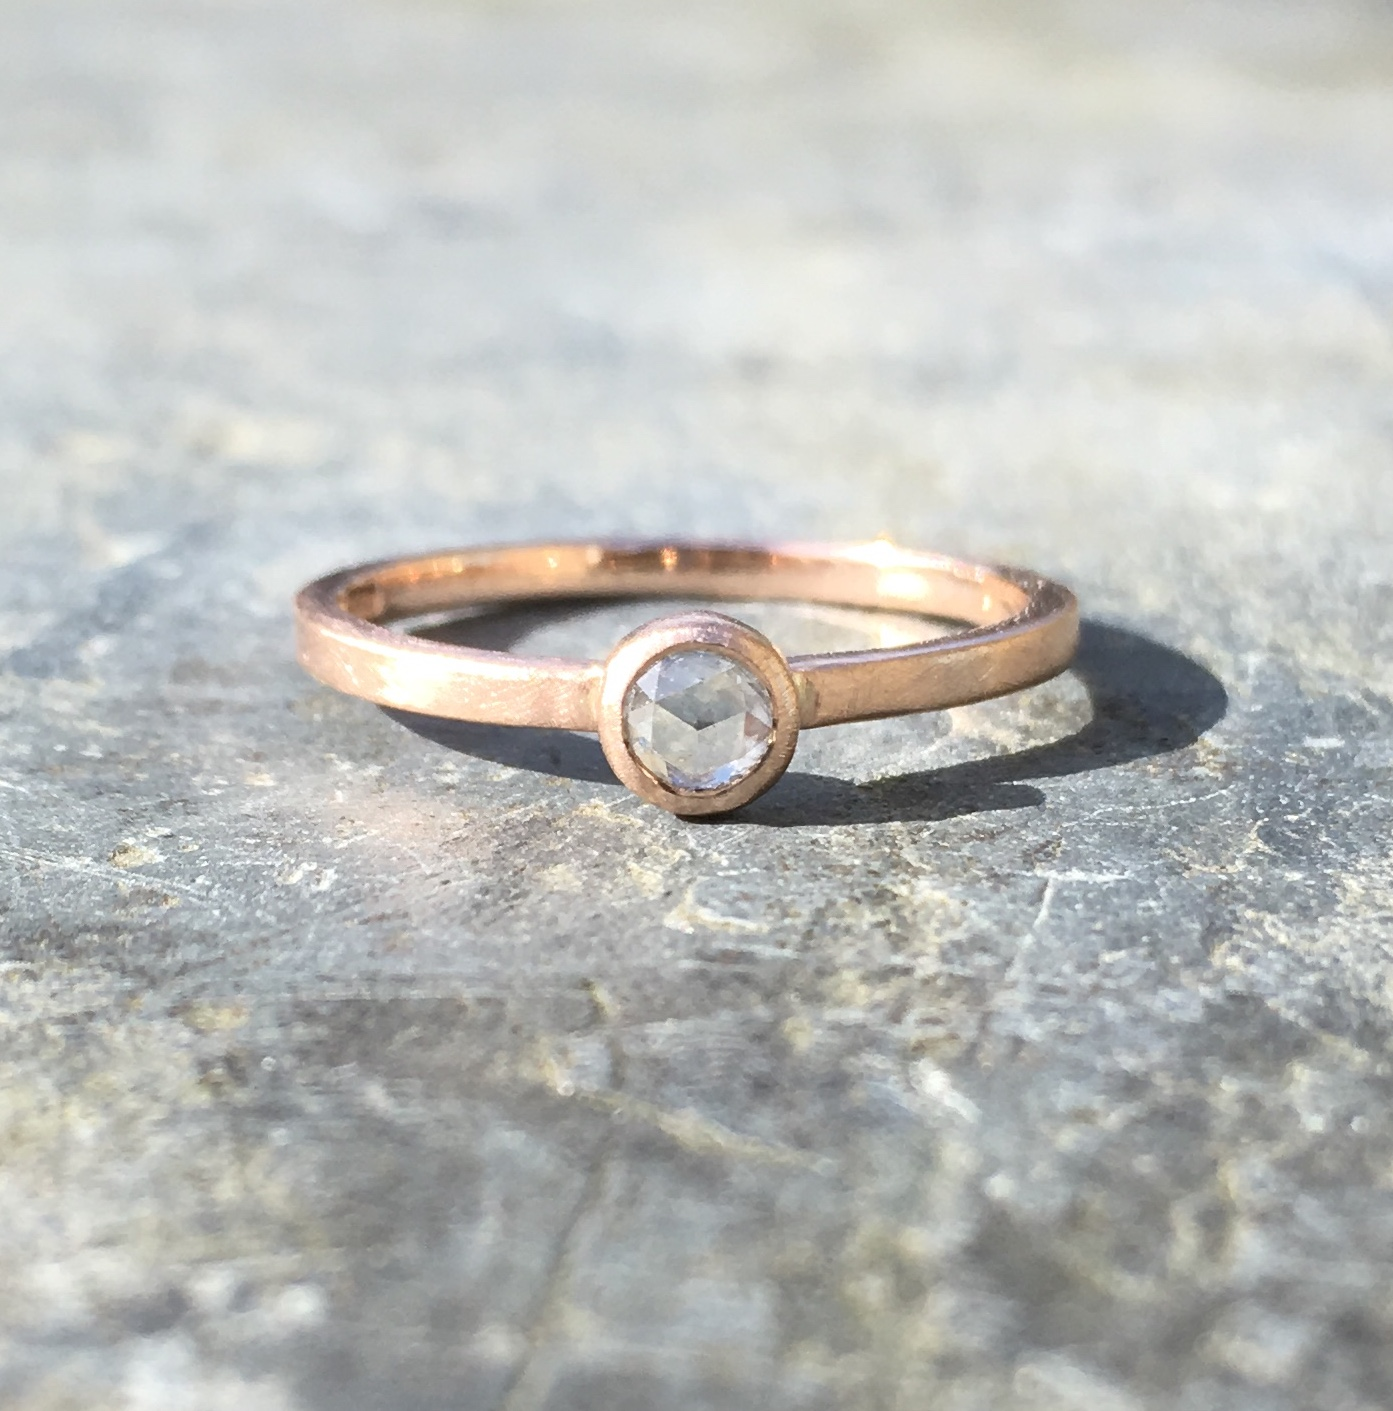 Recycled 18ct Rose Gold Engagement Ring, set with a pretty sparkly Ethically Sourced Rose-Cut Diamond